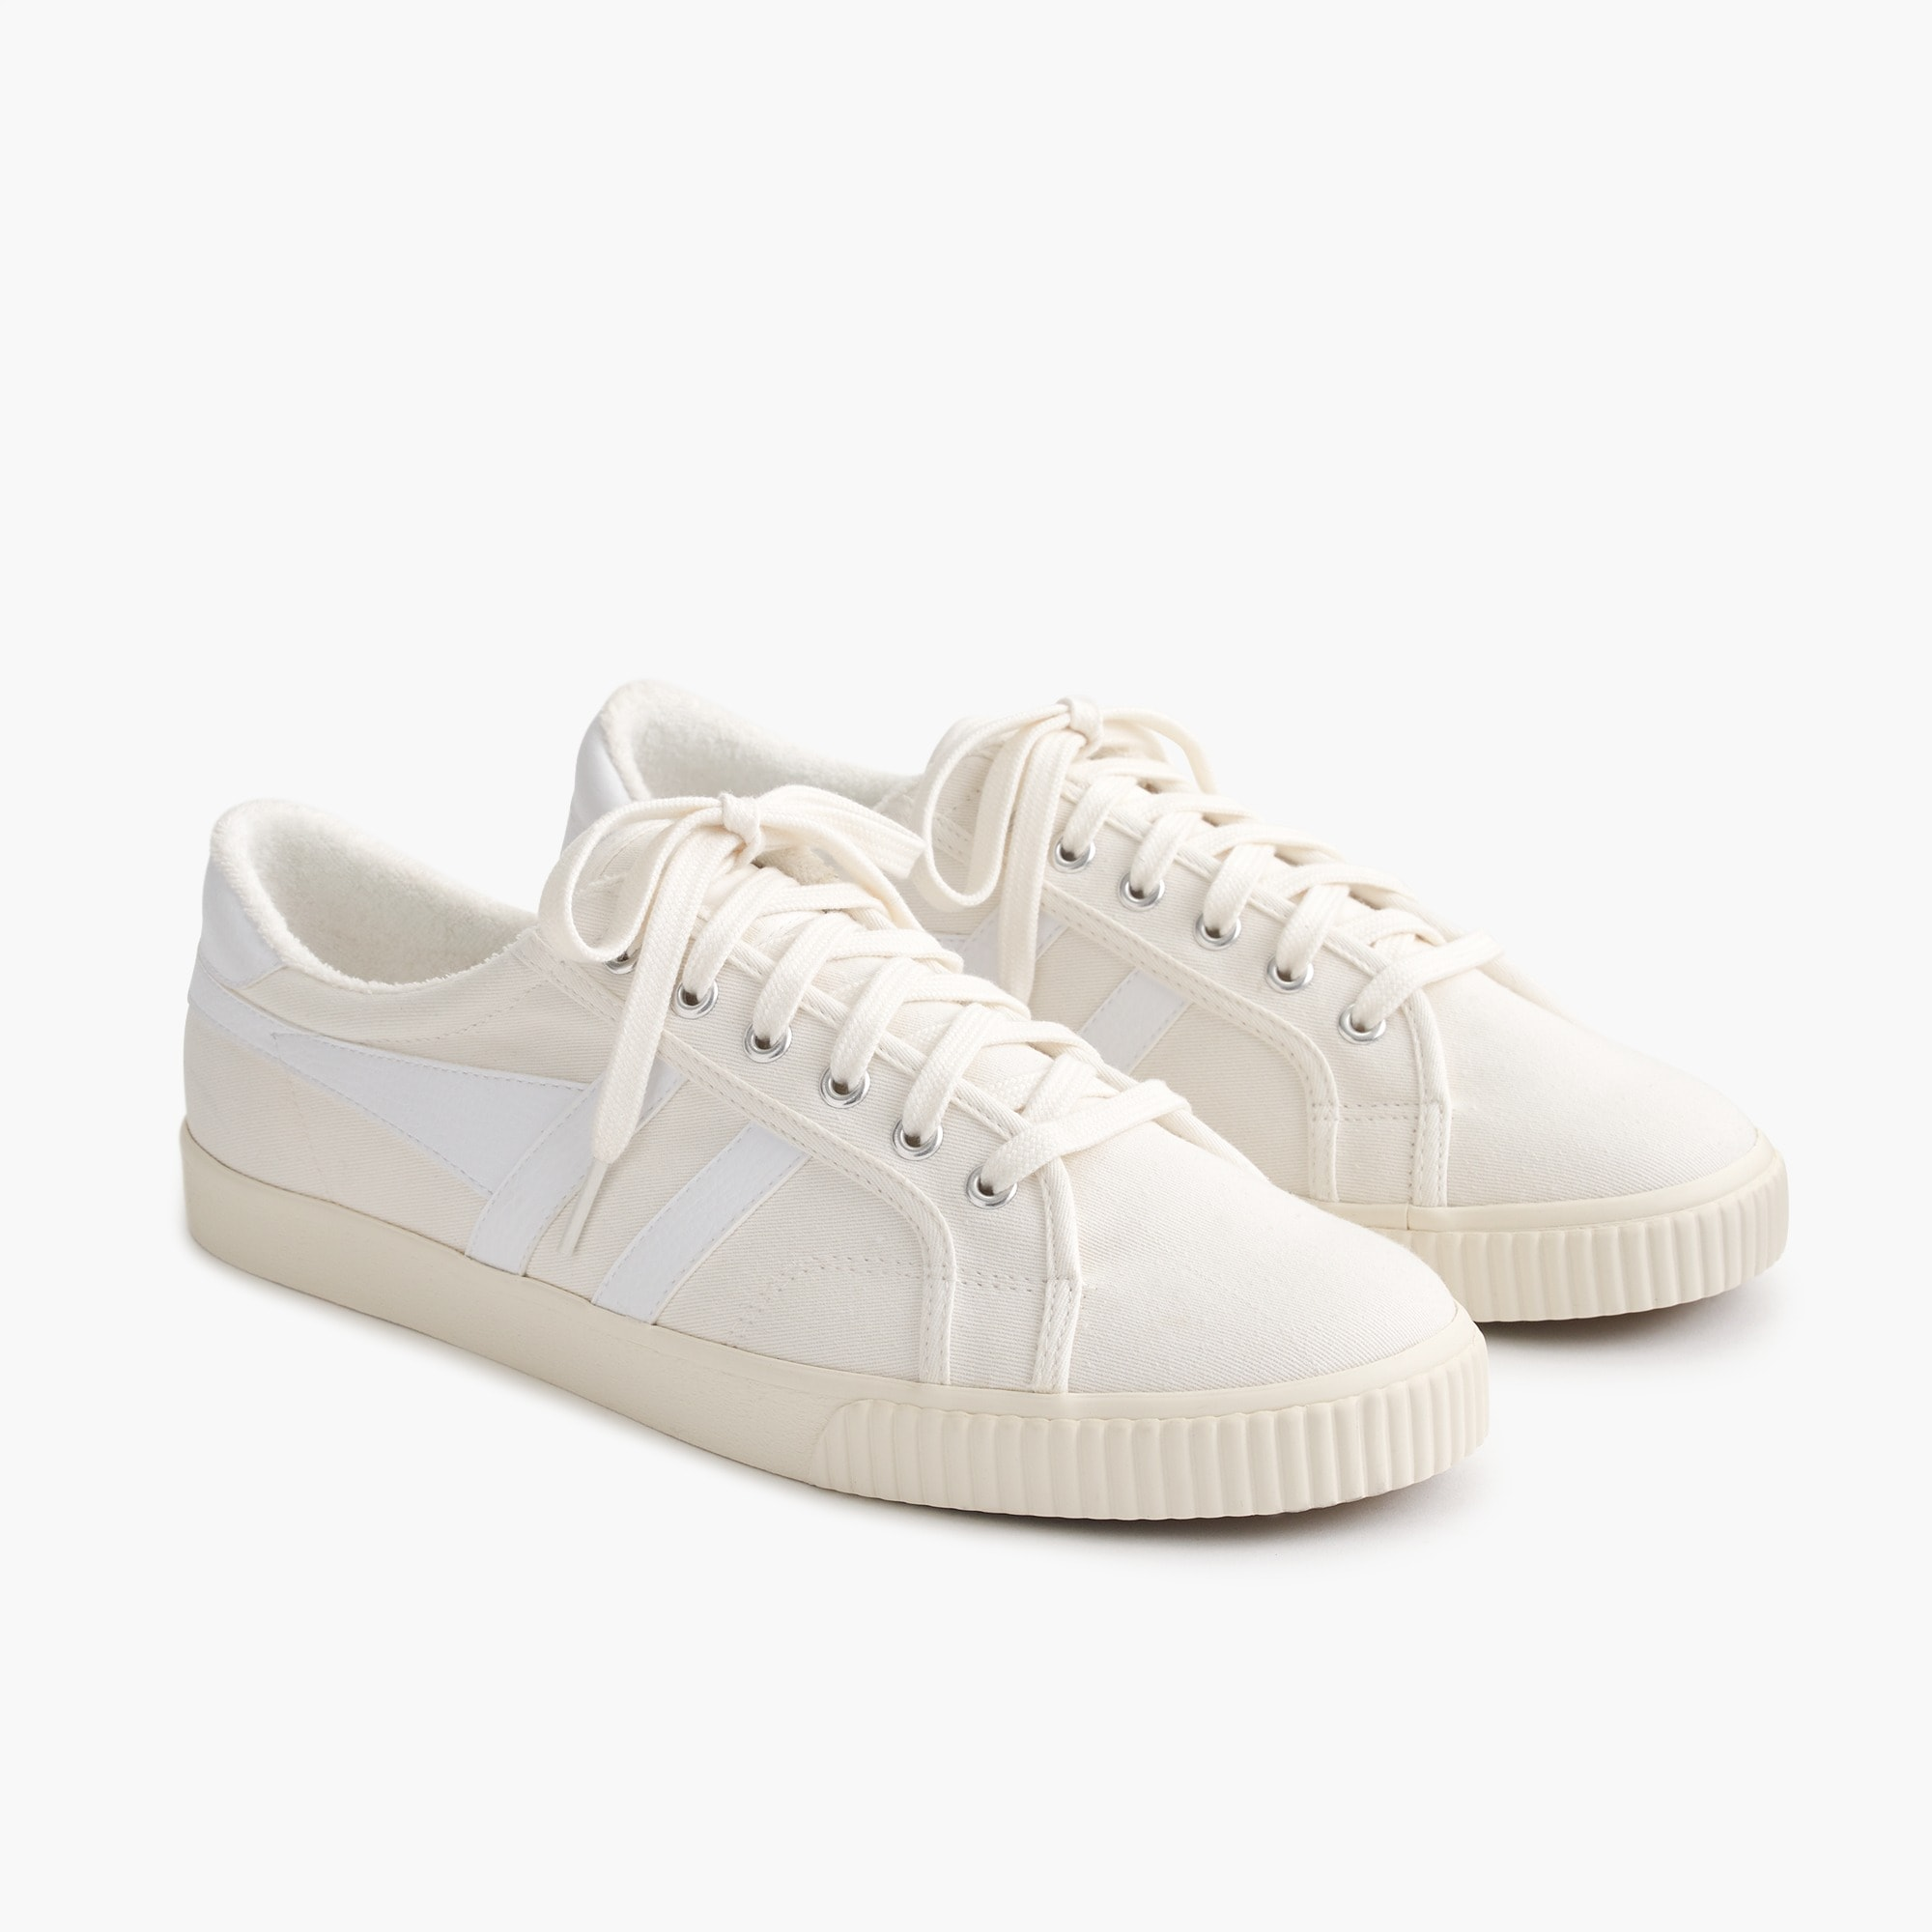 mens Gola® for J.Crew sneakers in white